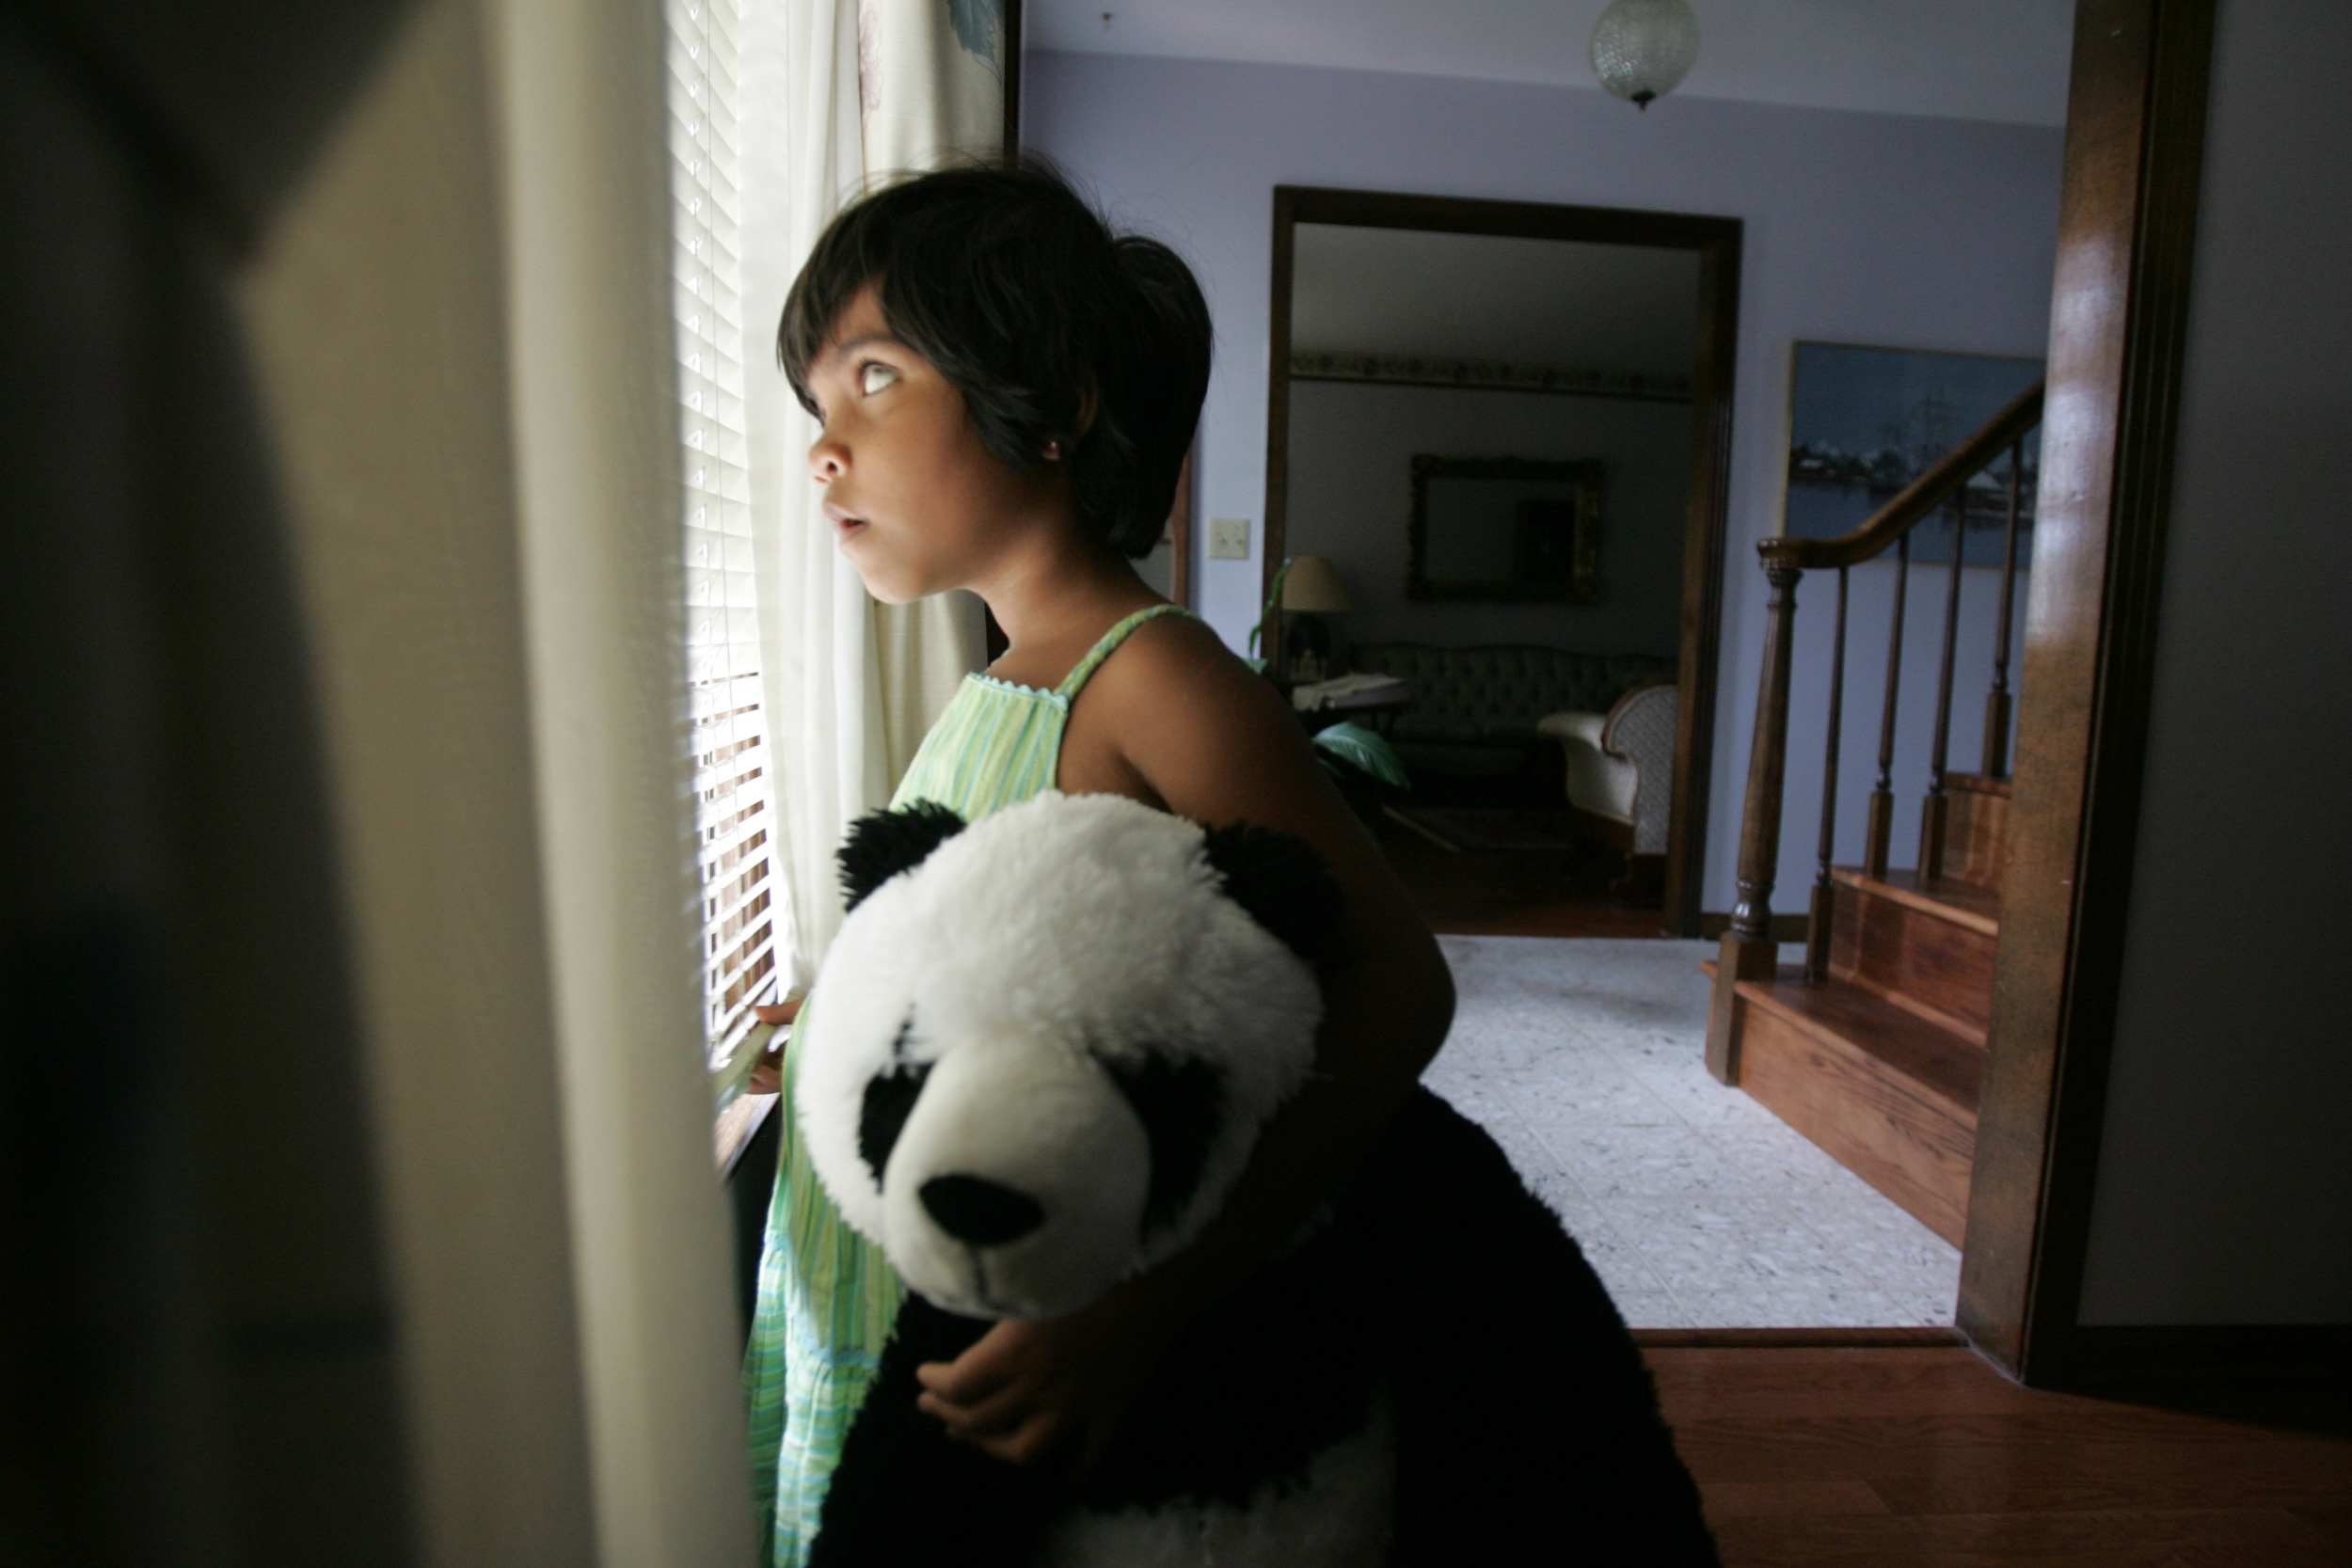 Kajal stands in front of a window at a second host family's house in Bellevue September 13, 2007. Her future uncertain, Kajal's journey in the U.S. has been fraught with complications and heartbreak.